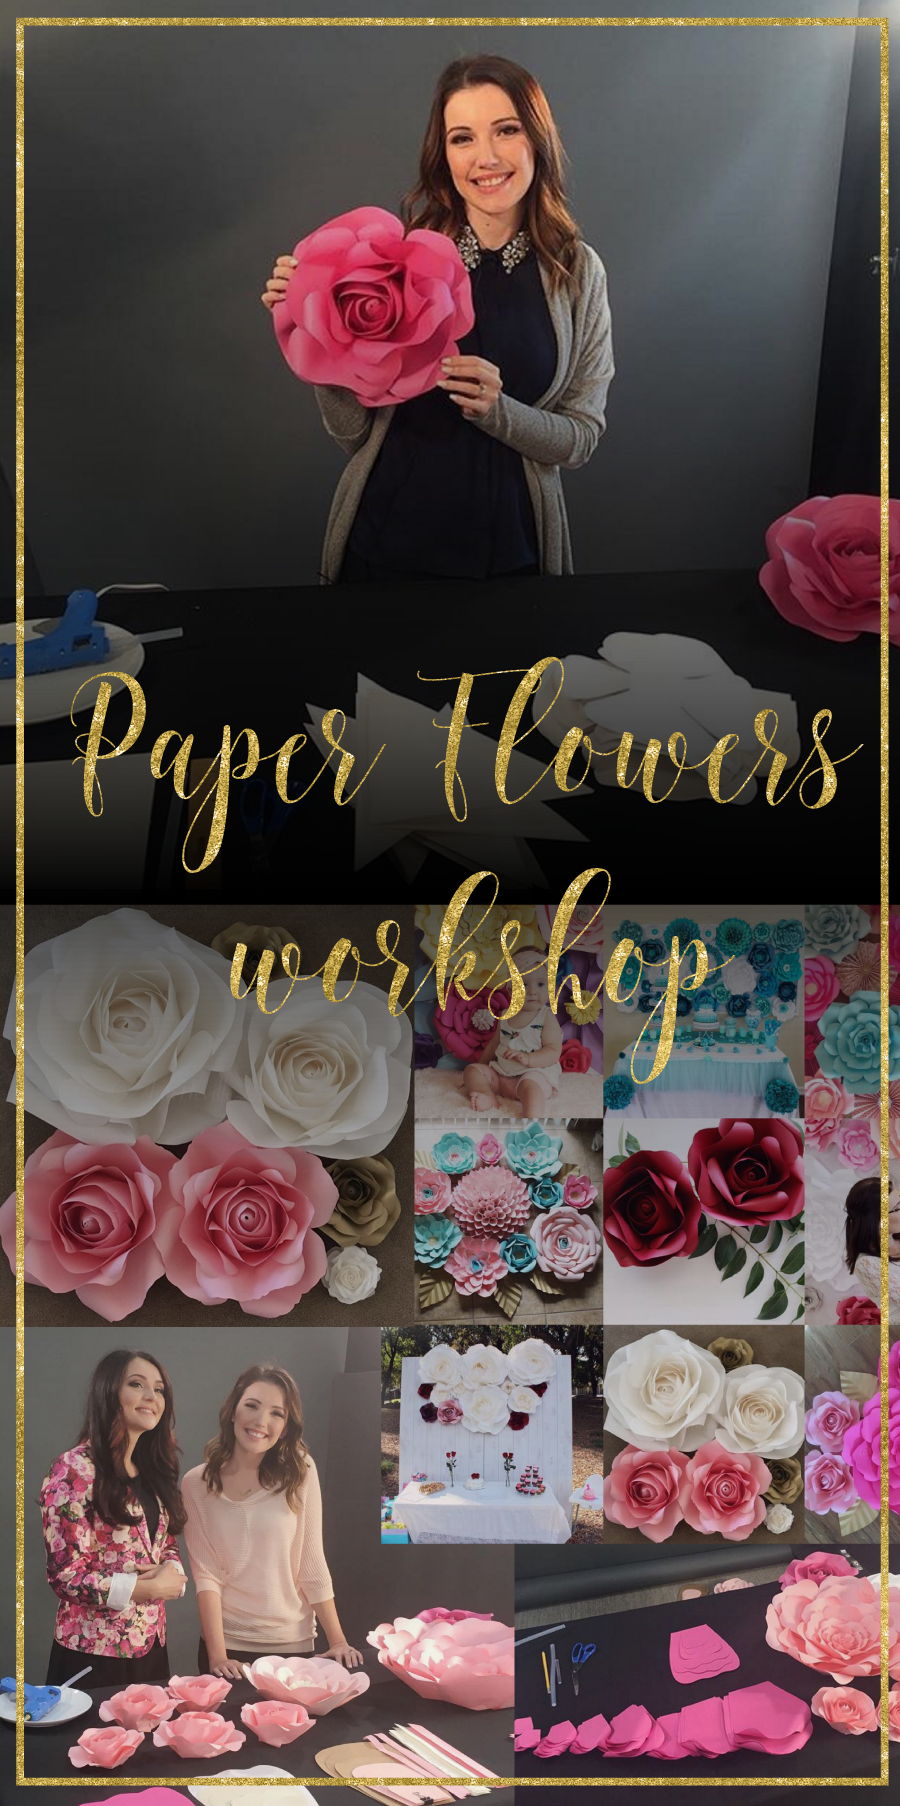 Paper flowers online workshop you will learn to make a variety flower paper flowers online workshop dhlflorist Image collections